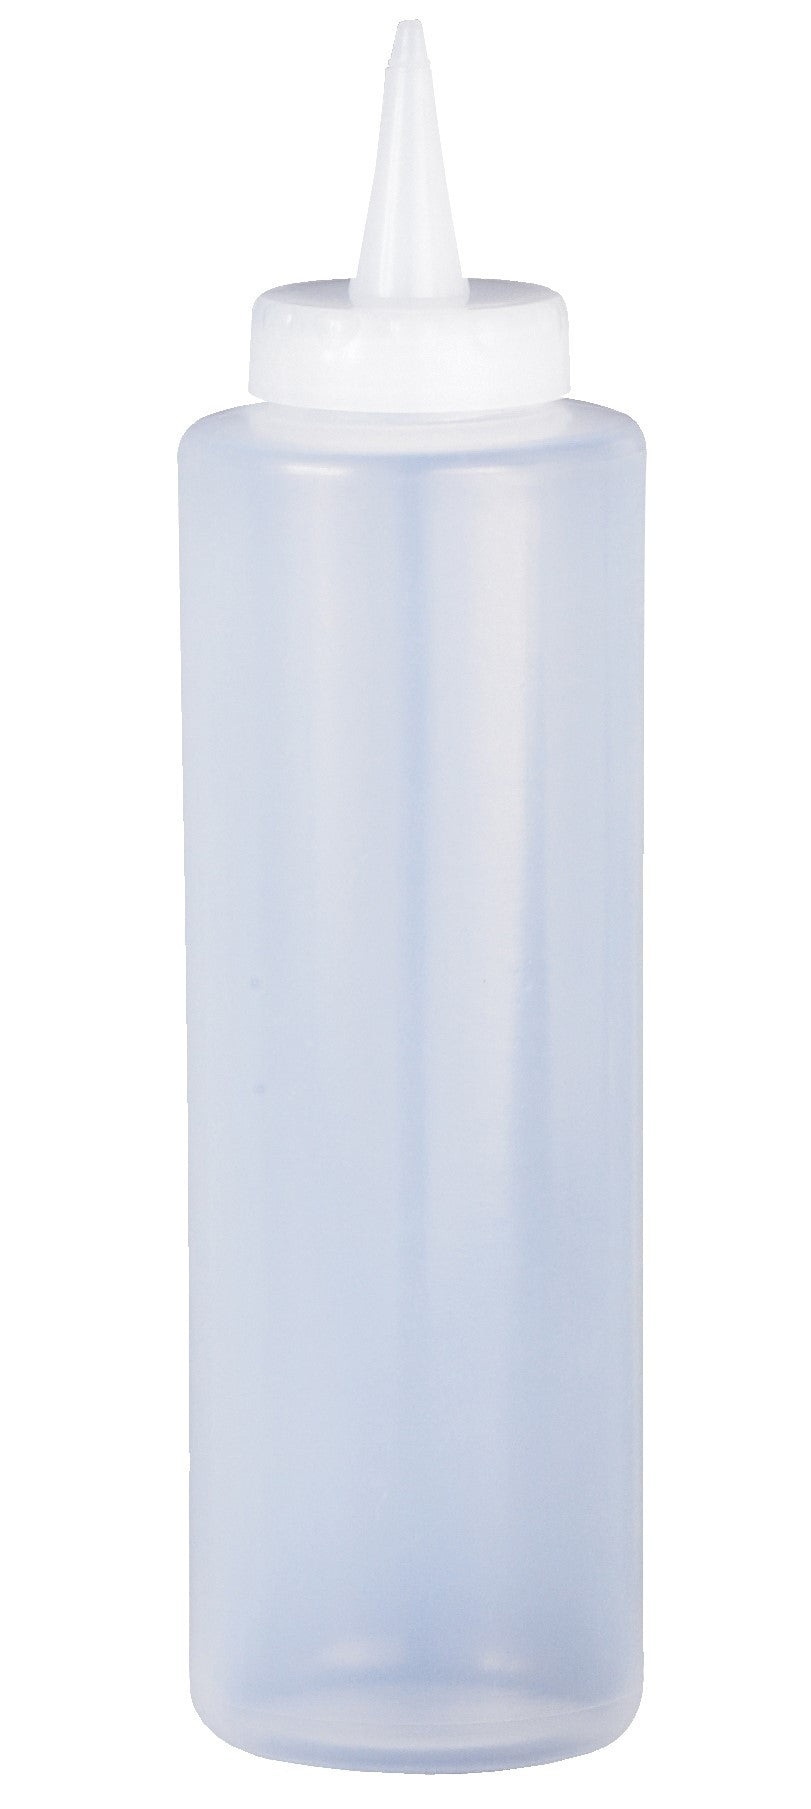 8oz Plastic Squeeze Bottle